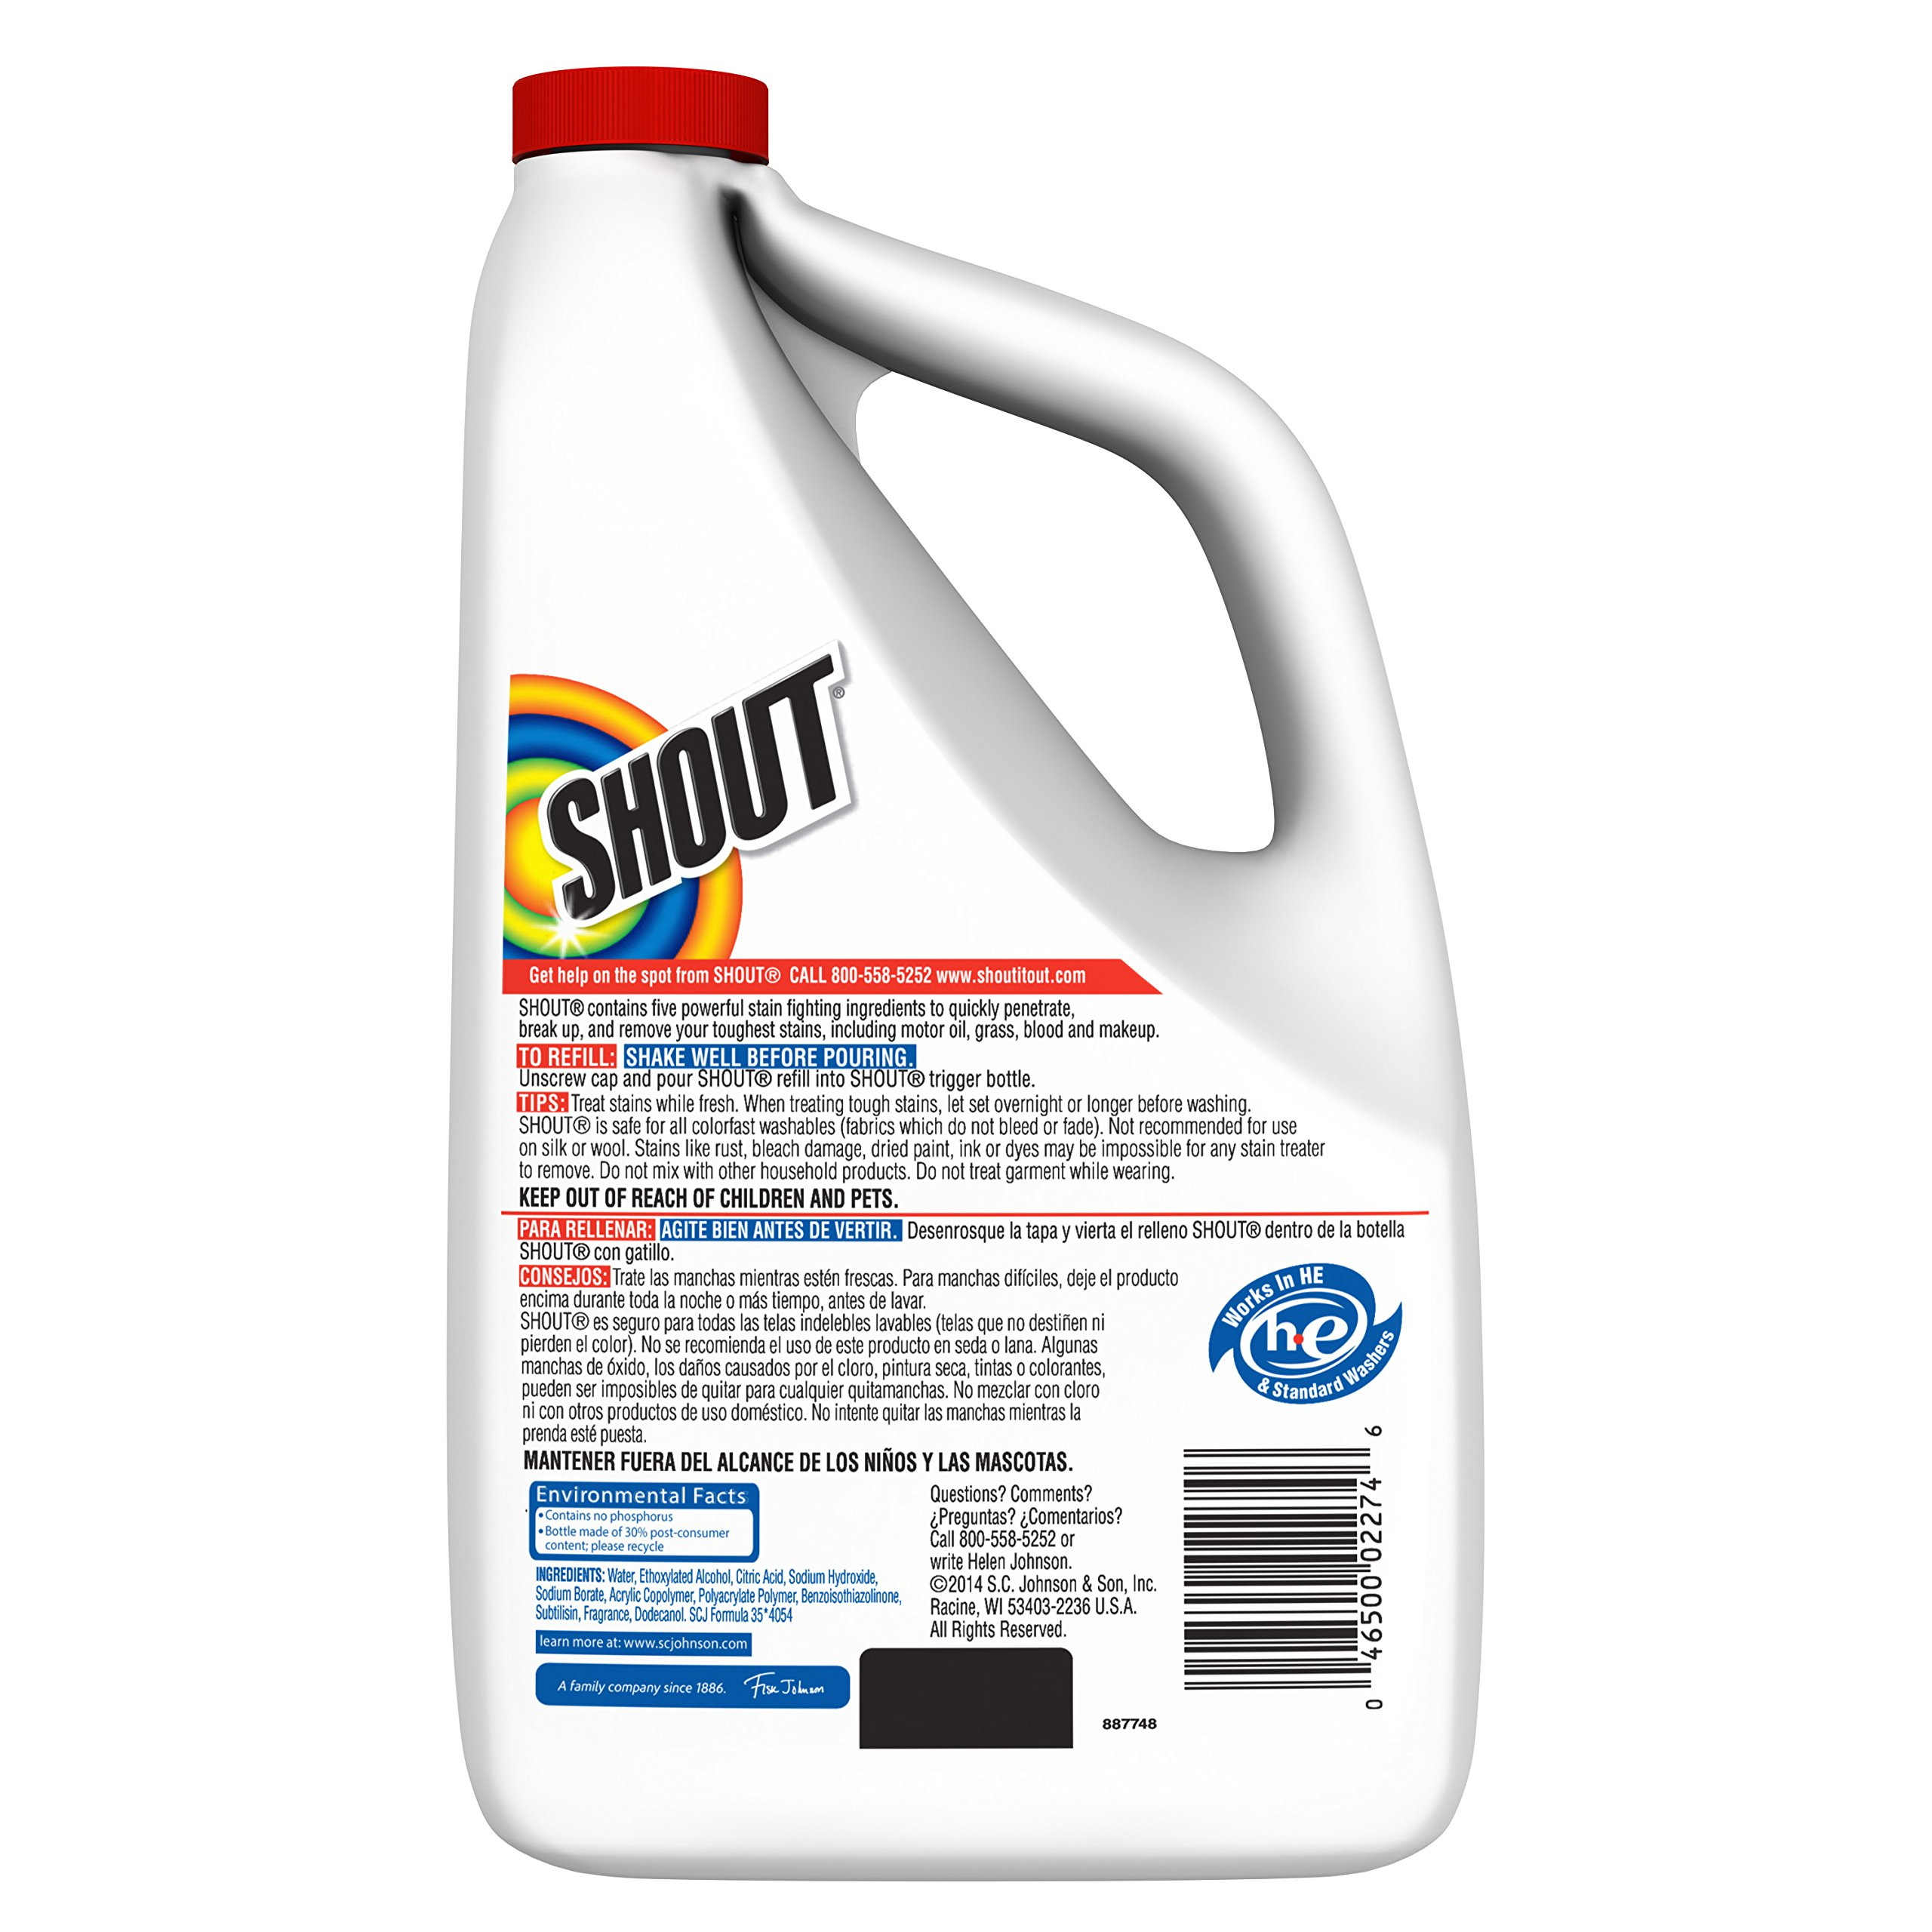 Shout Triple-Acting Liquid Refill 60 fl oz. (Pack of 6) by Shout (Image #2)